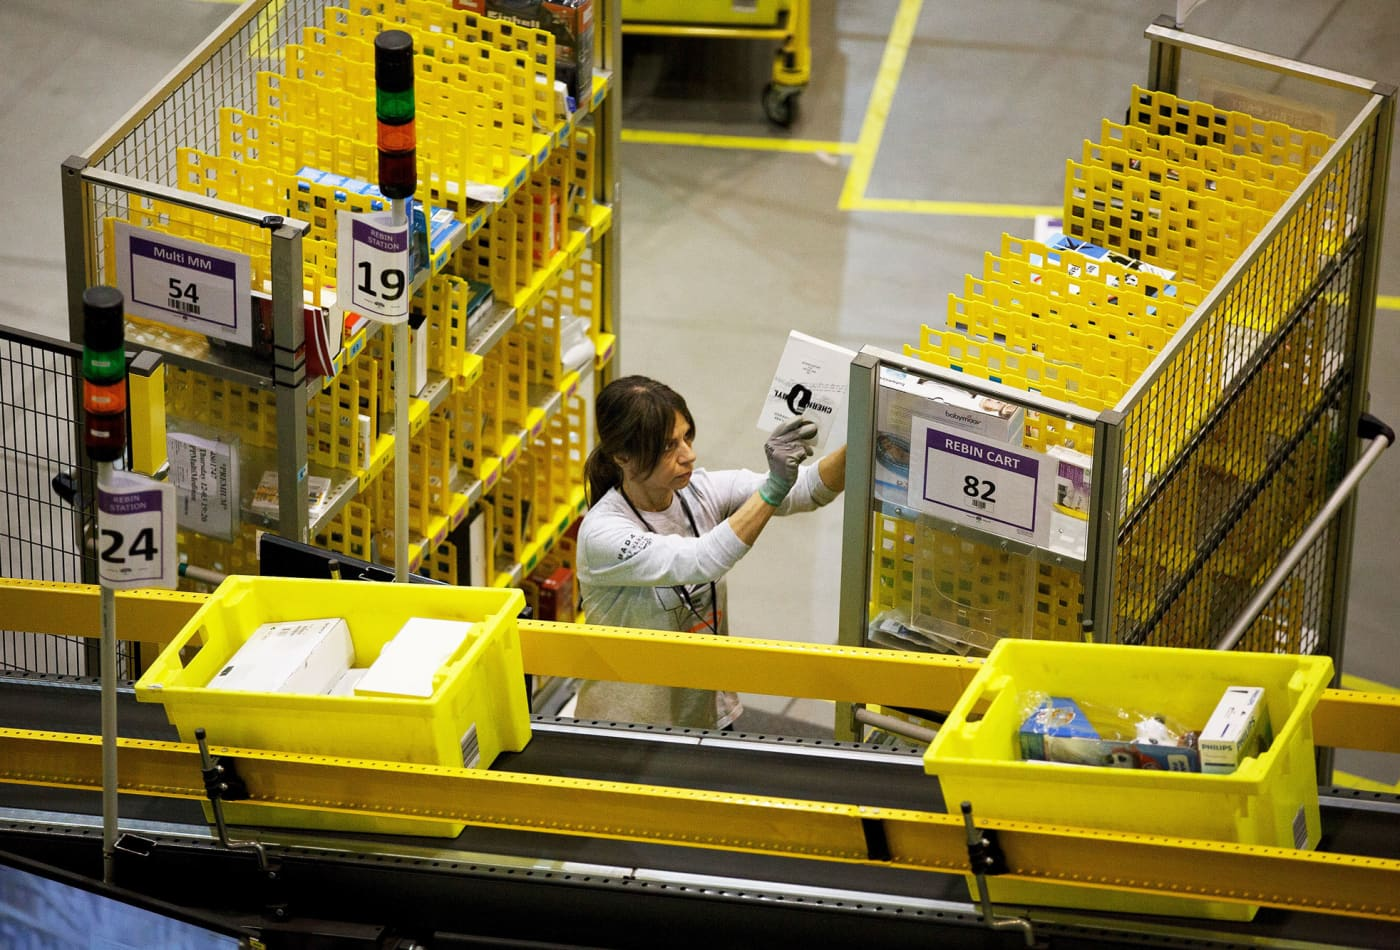 Amazon is testing a wearable device that lights up and beeps when warehouse workers get too close to each other